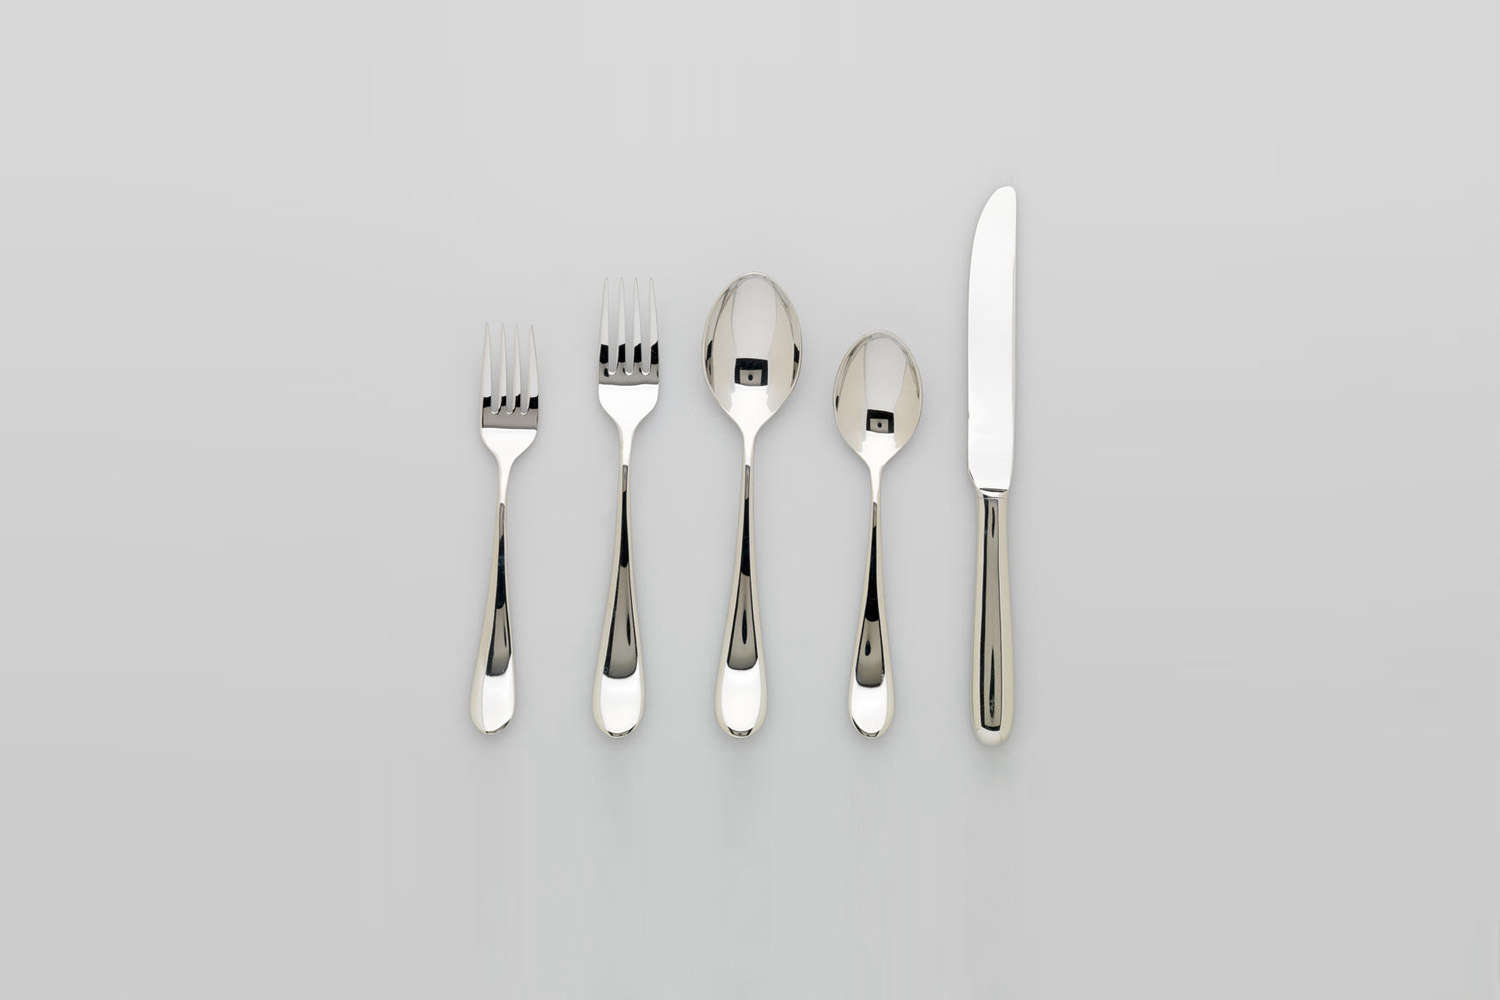 While it's no longer in production, Massimo and Lella Vignelli's Sasaki Basic Flatware set is Janet&#8